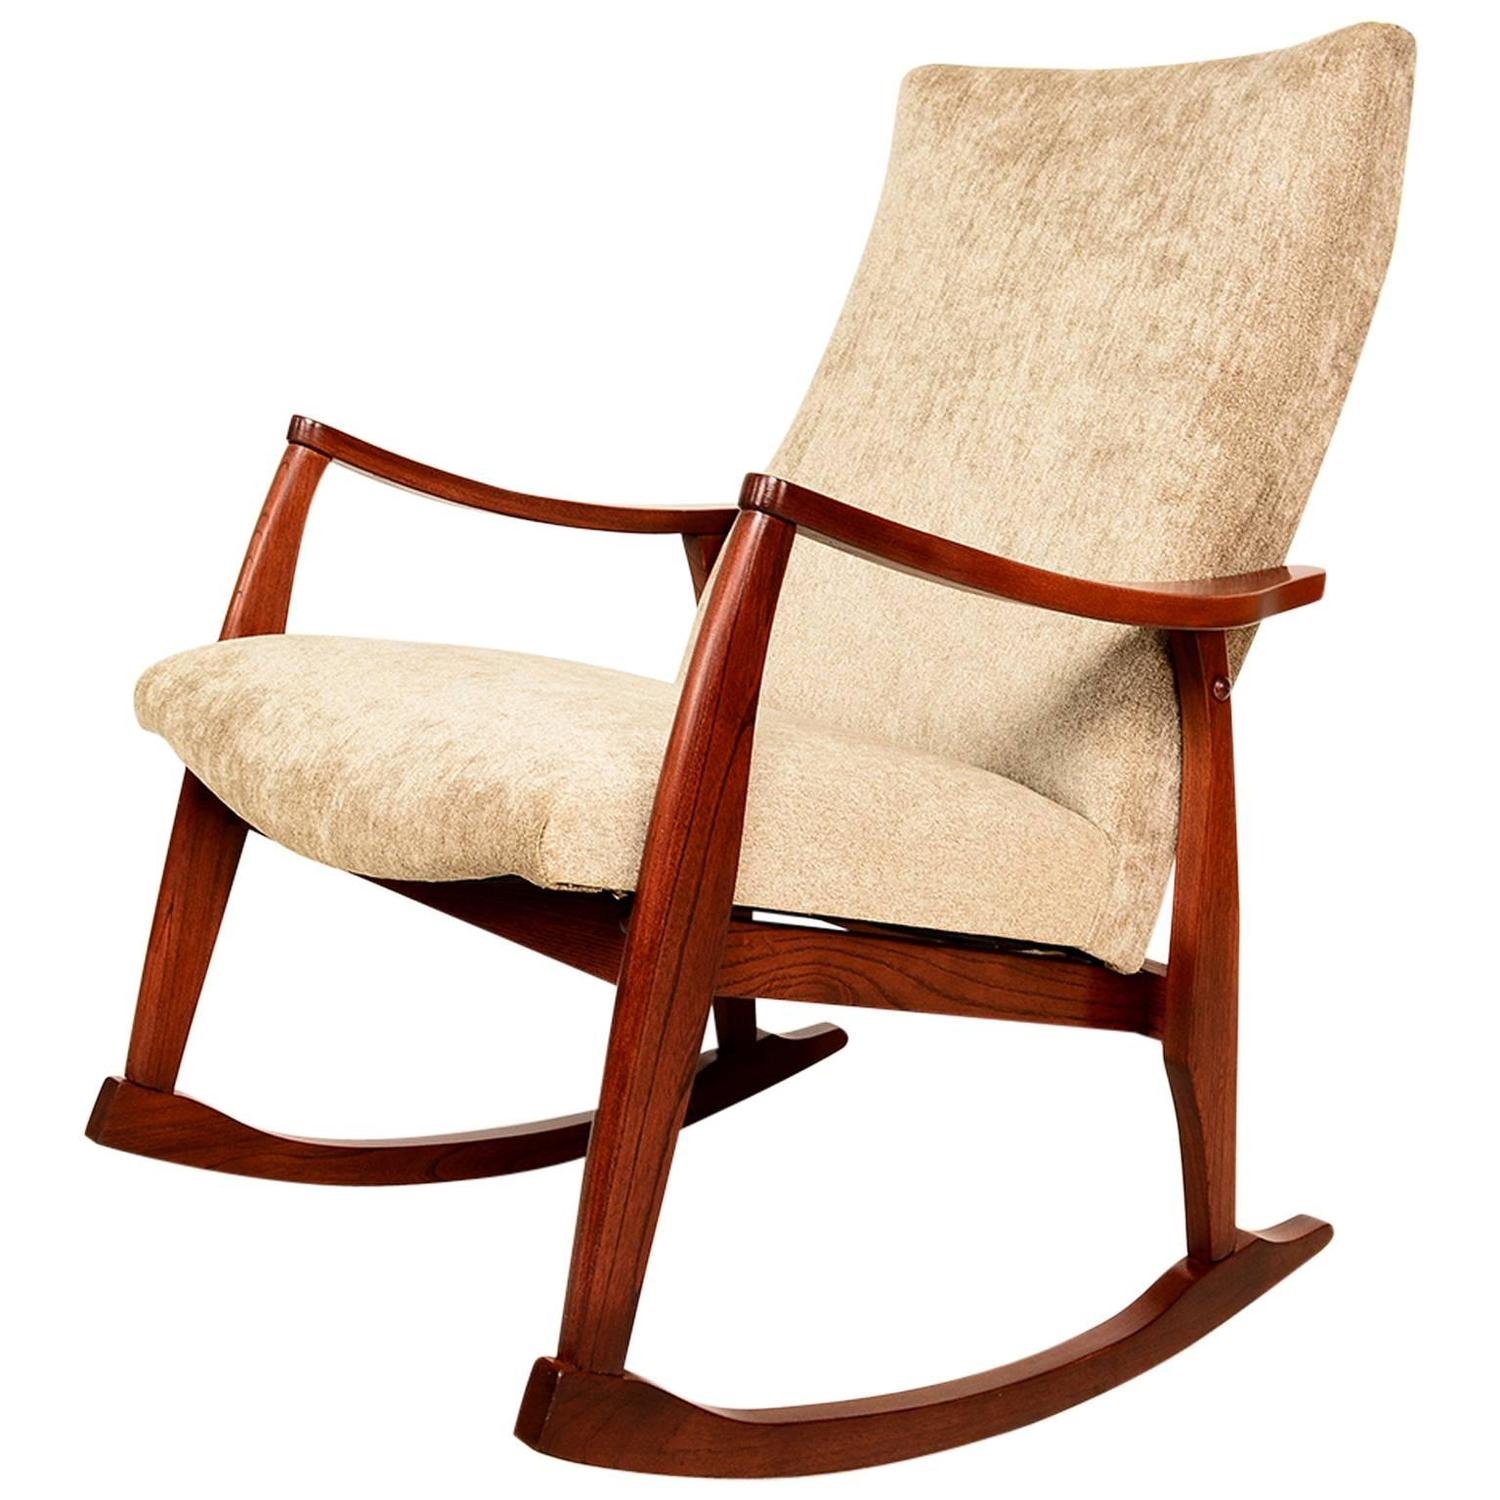 Mid-Century Modern Rocking Chair For Sale at 1stdibs